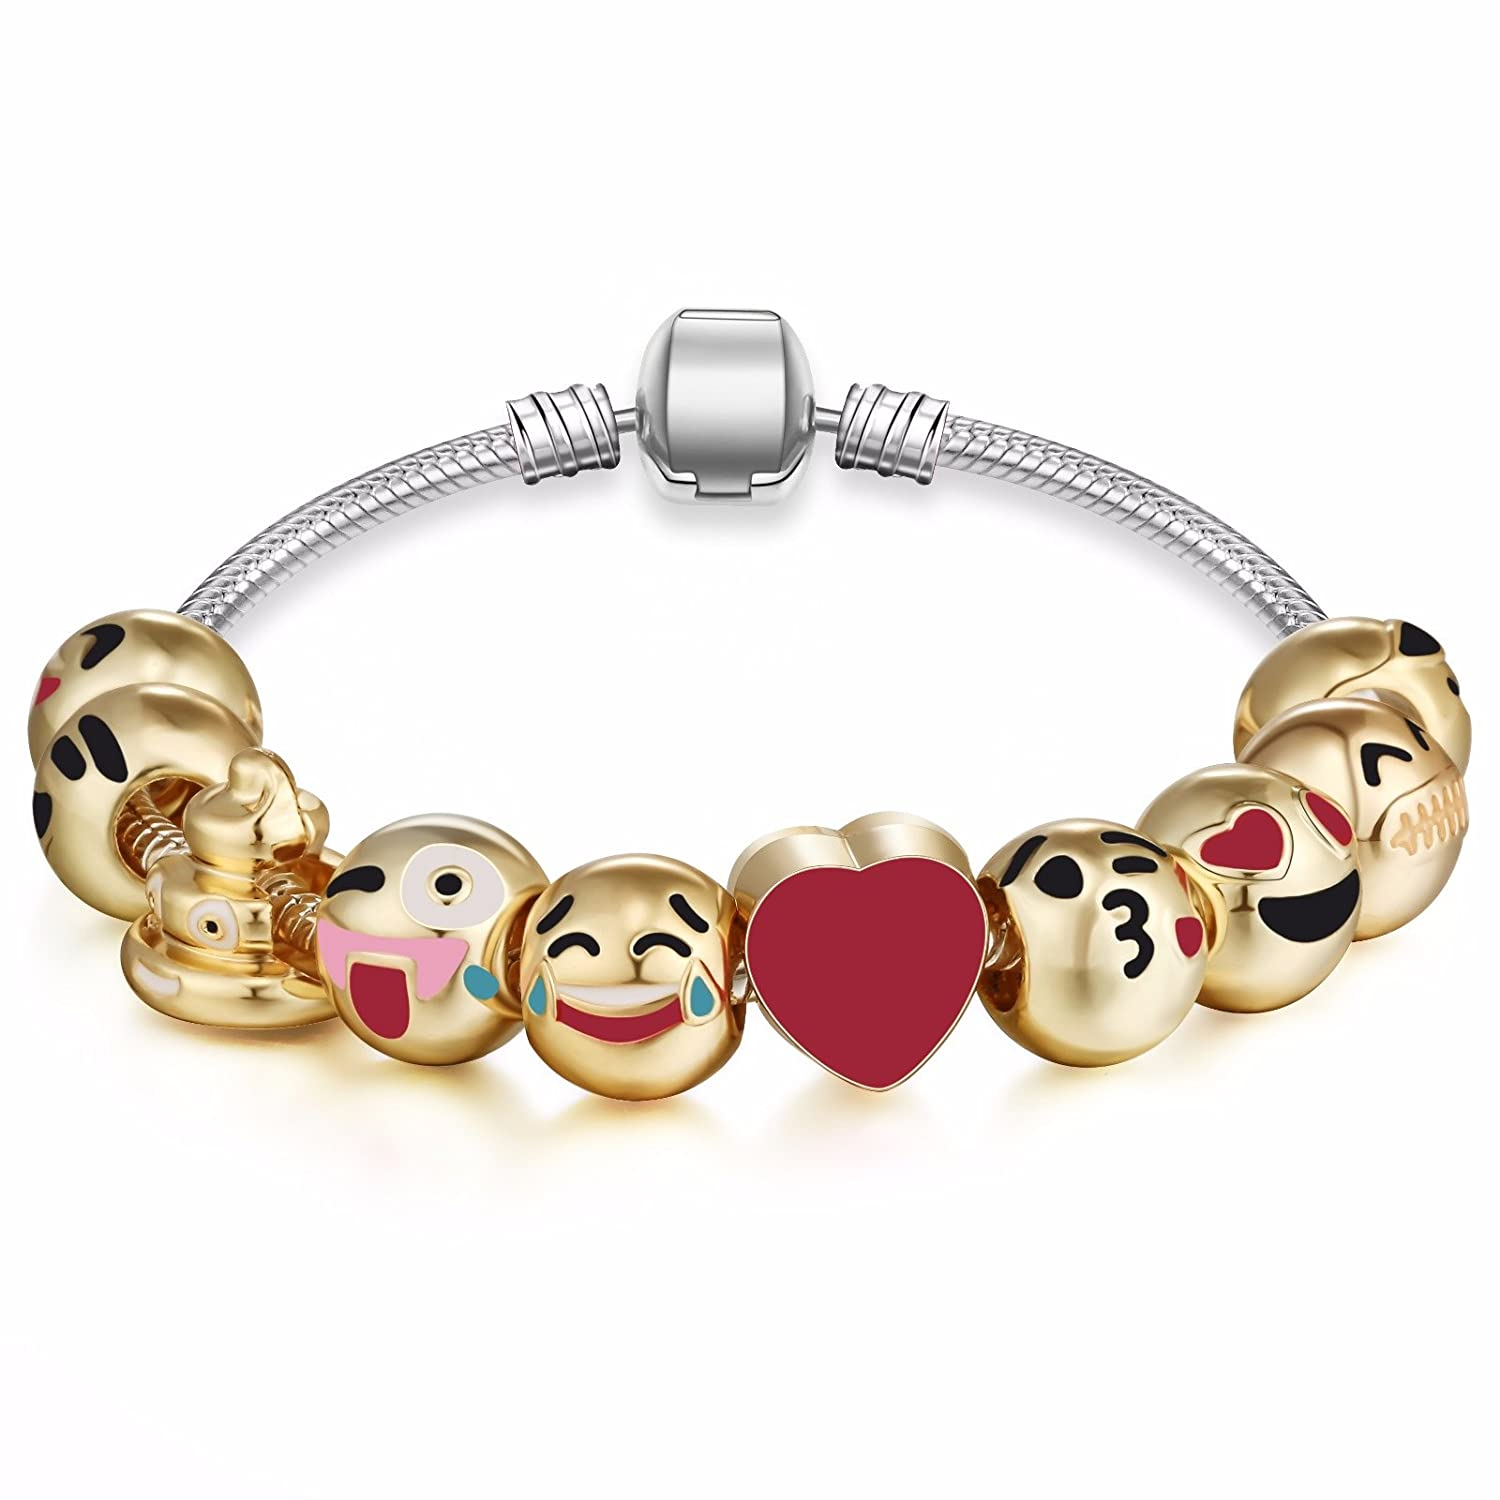 interchangeable pin bracelet women links jewelryforsale id fashion medical heart for